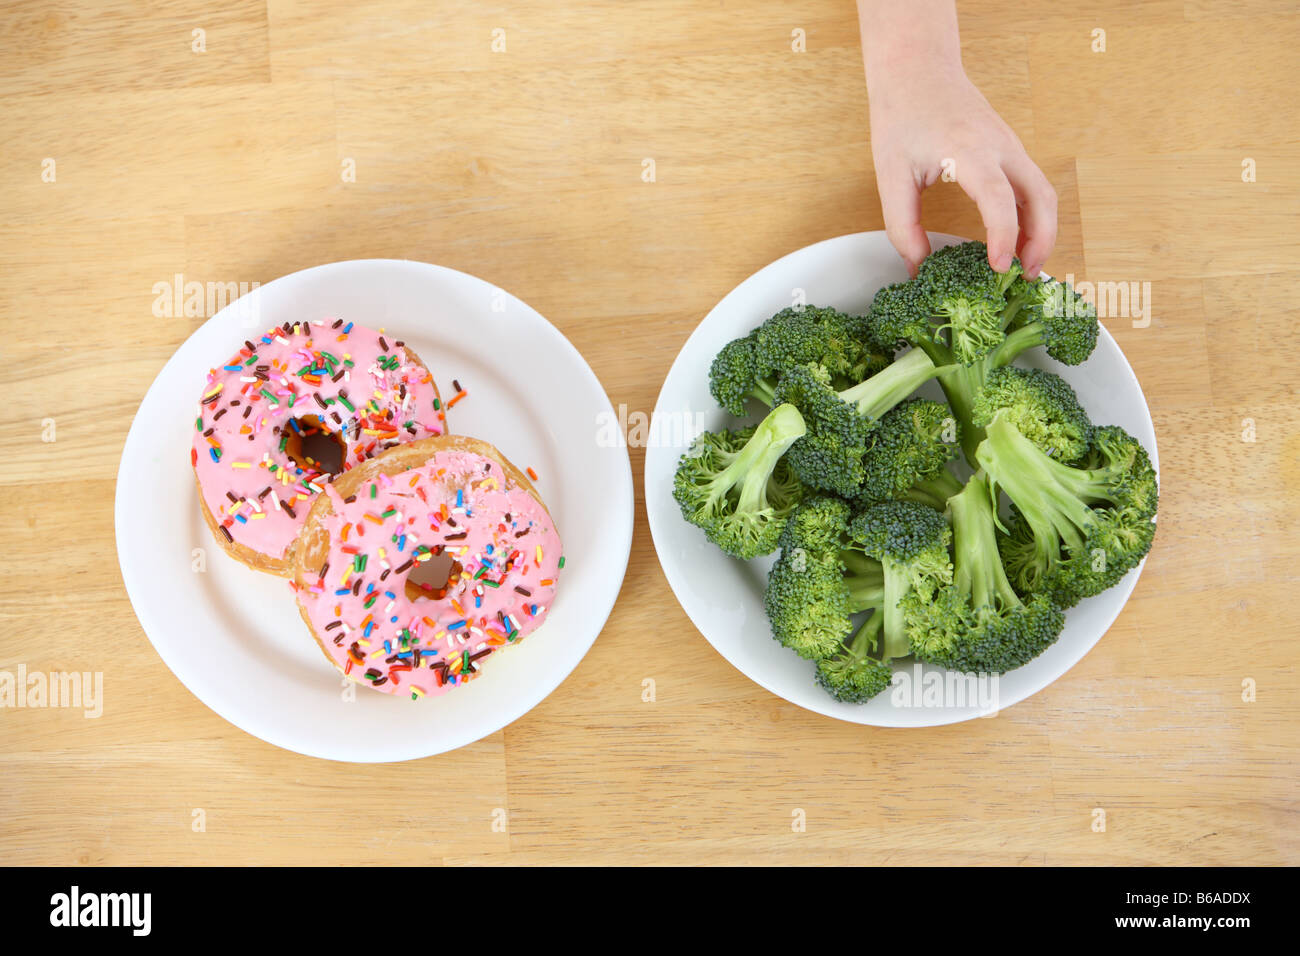 Child s hand reaching for healthy broccoli rather than doughnuts - Stock Image